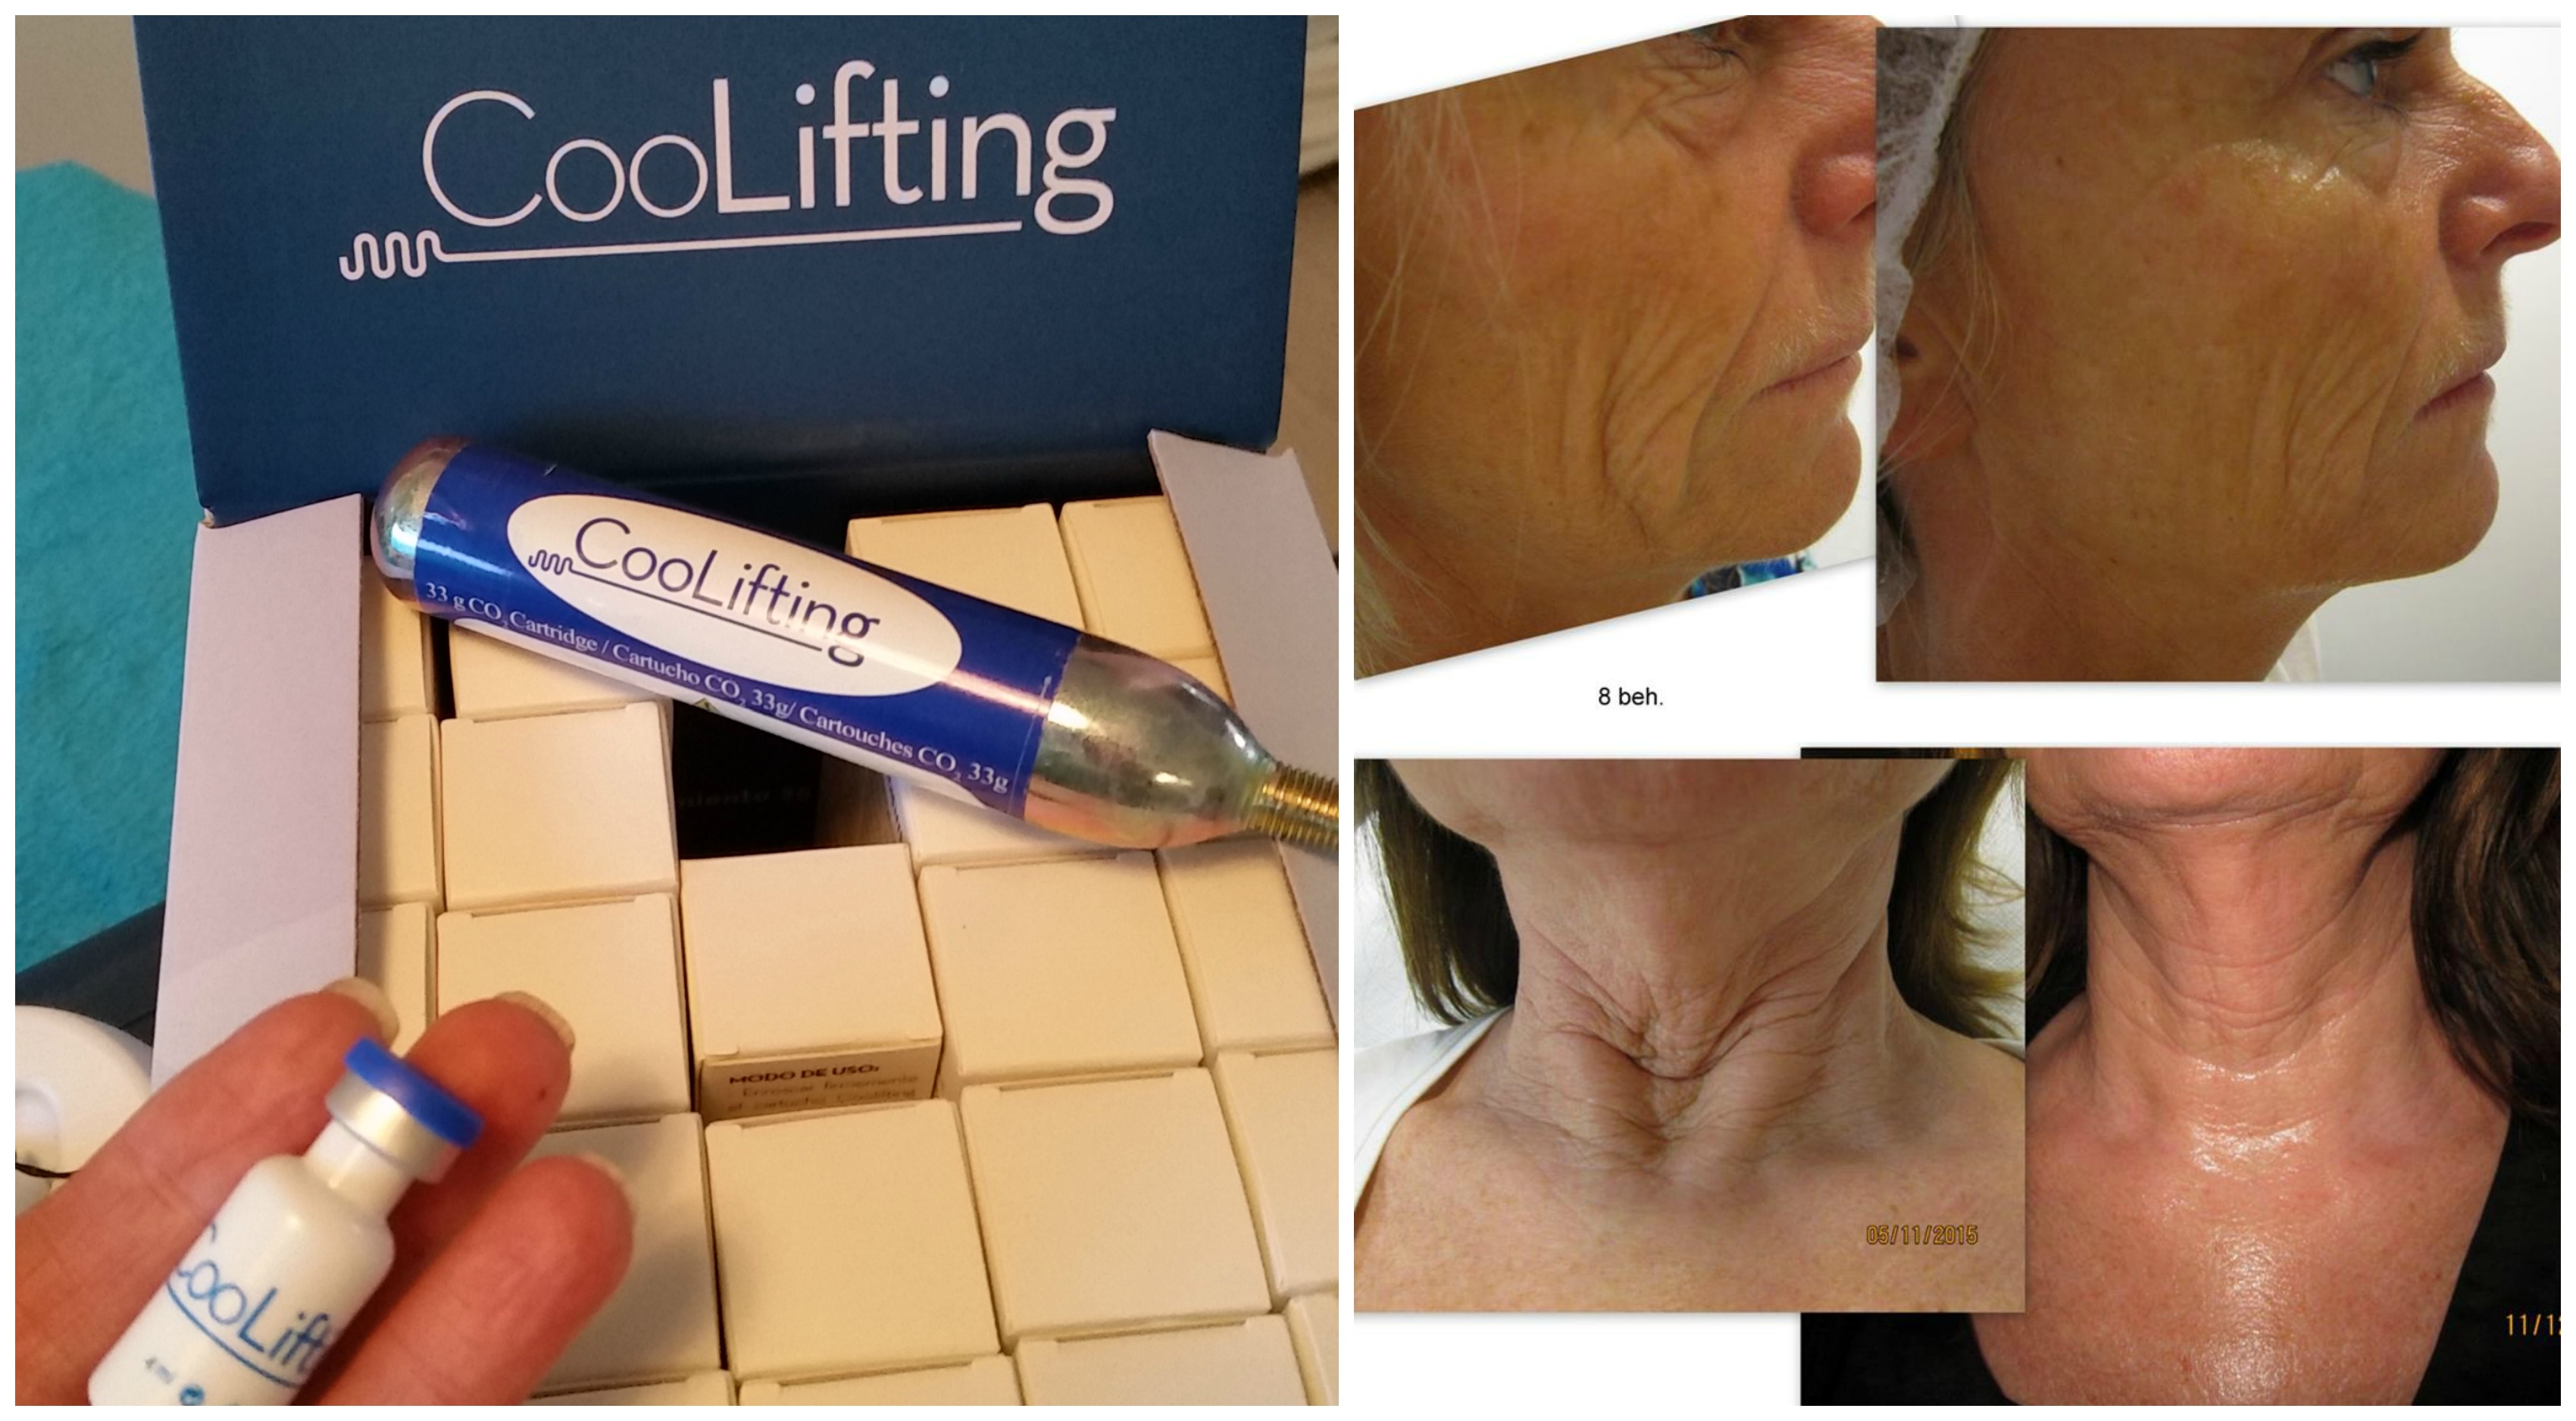 Coollifting collage